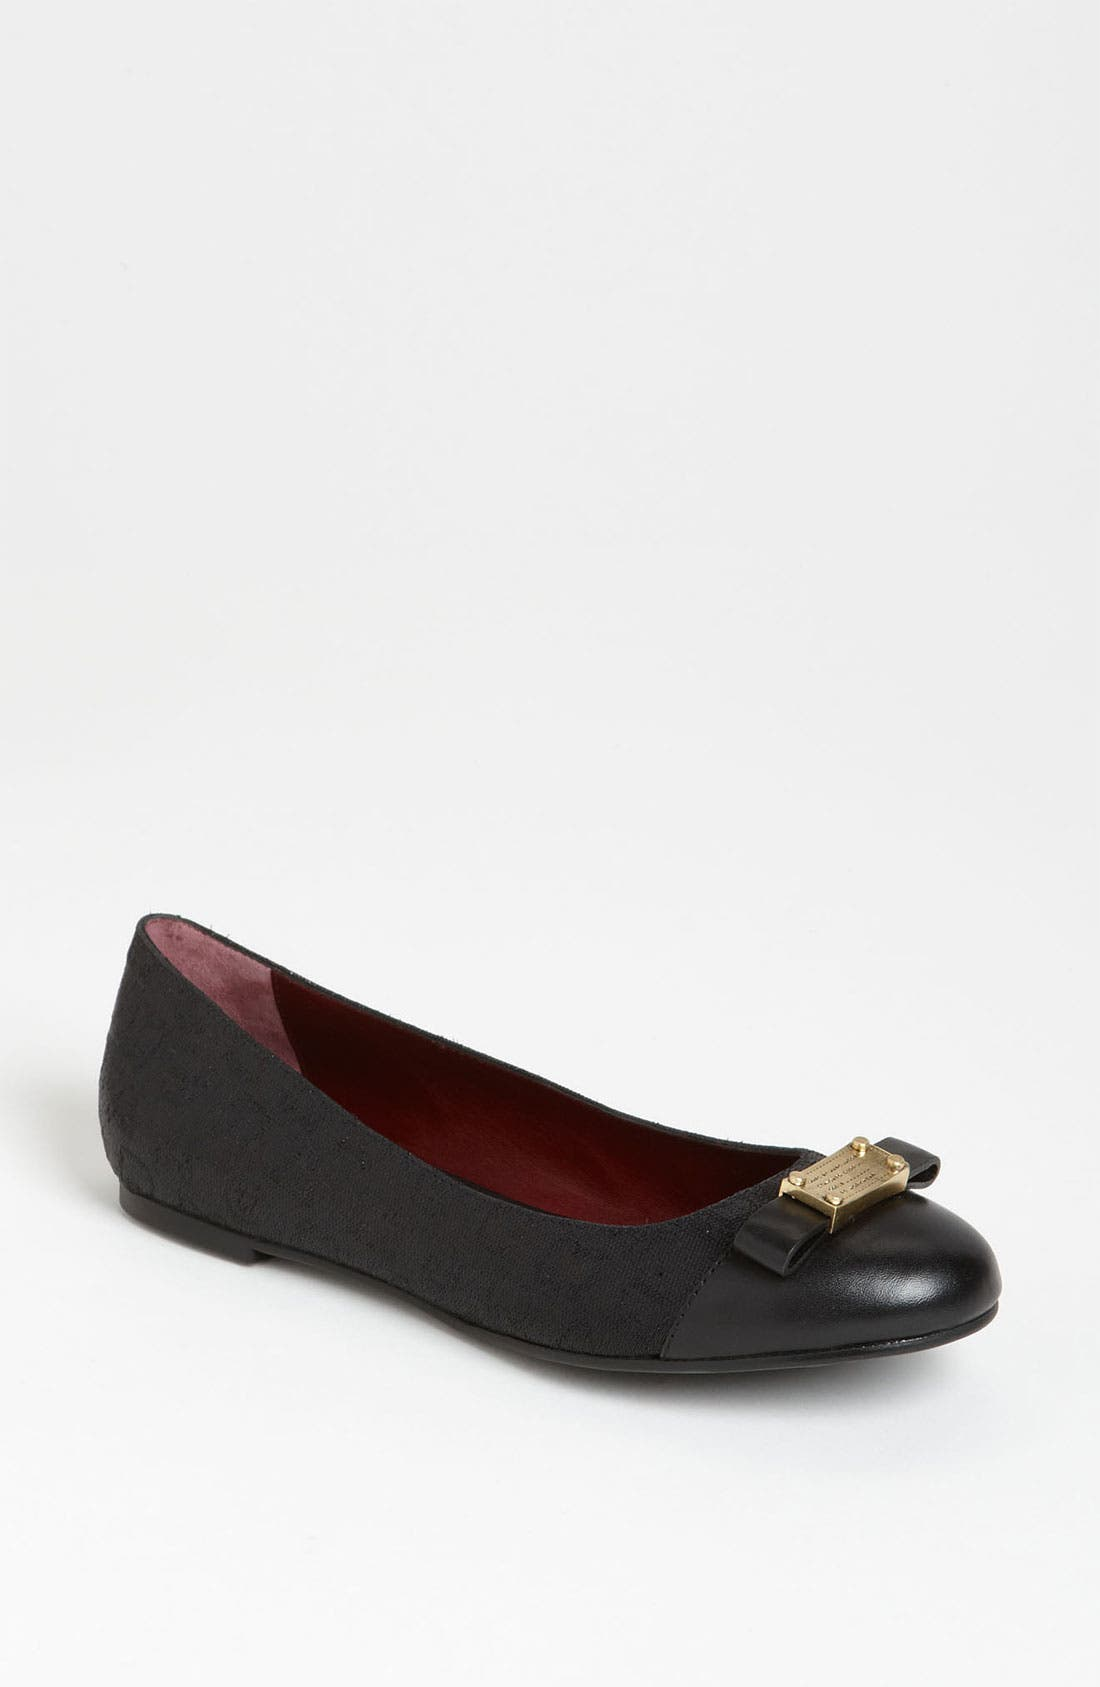 Alternate Image 1 Selected - MARC BY MARC JACOBS 'Tuxedo' Flat